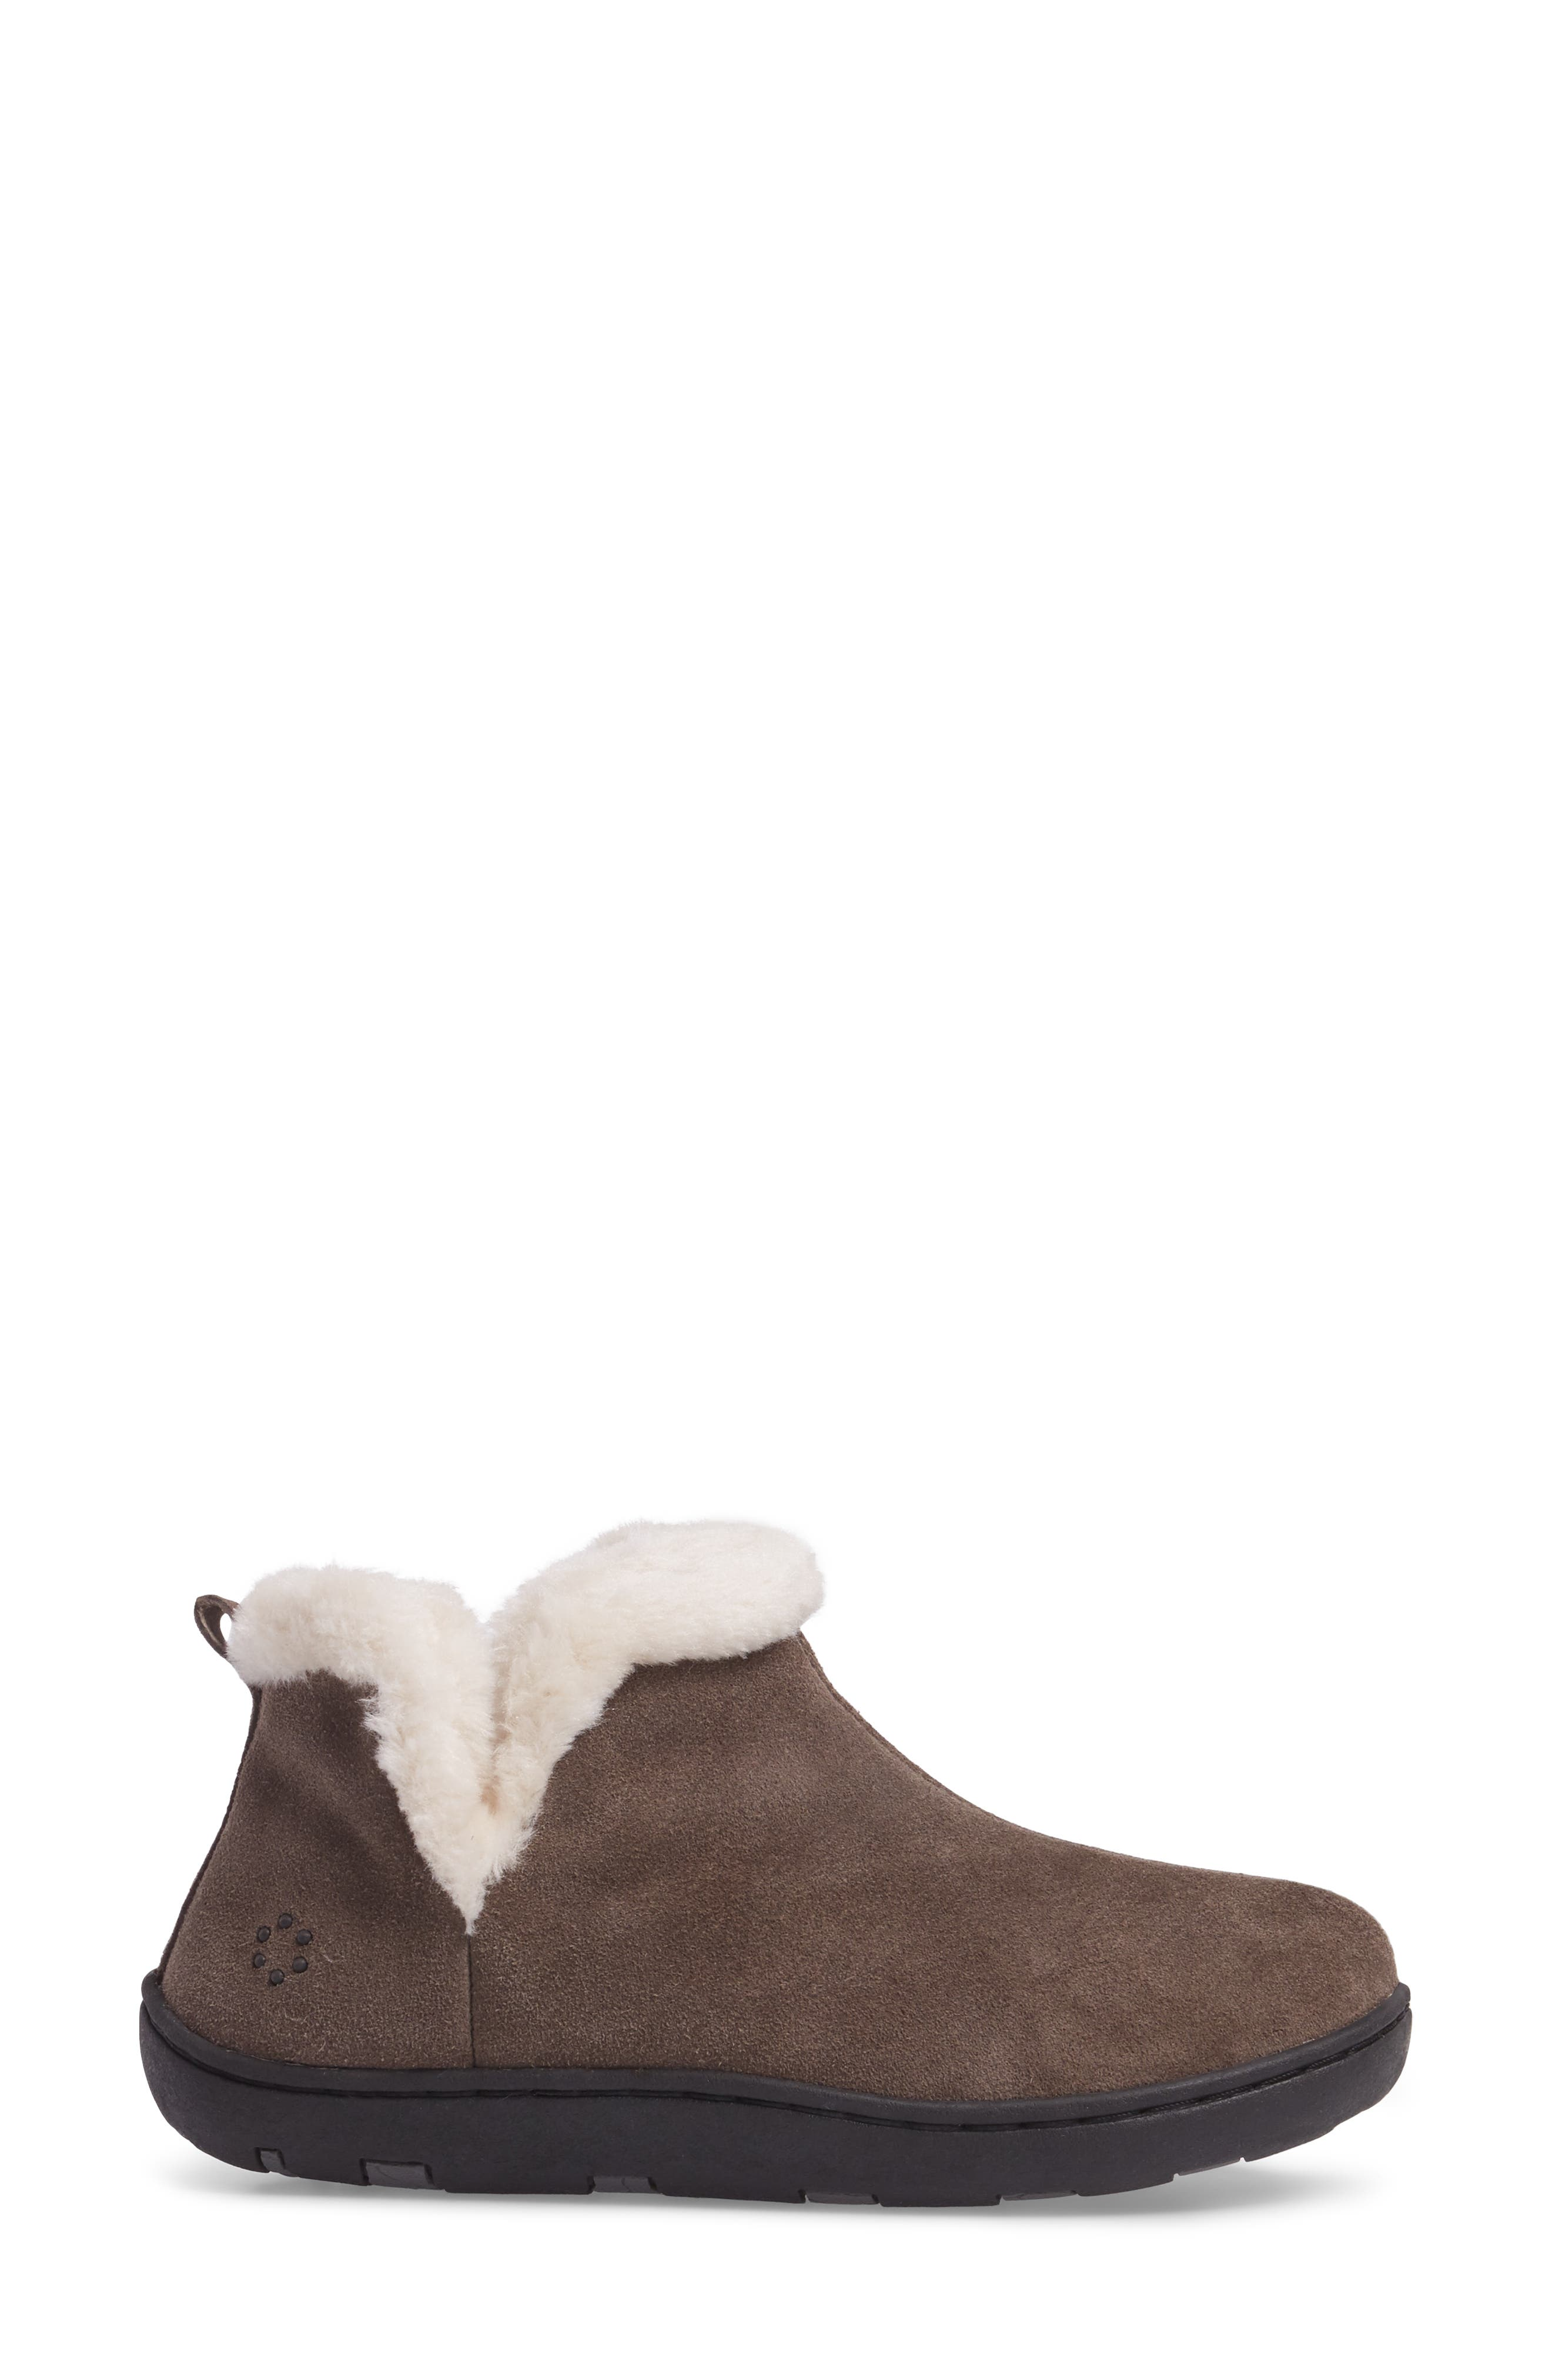 Vallery Bootie Slipper,                             Alternate thumbnail 3, color,                             GRAY SUEDE